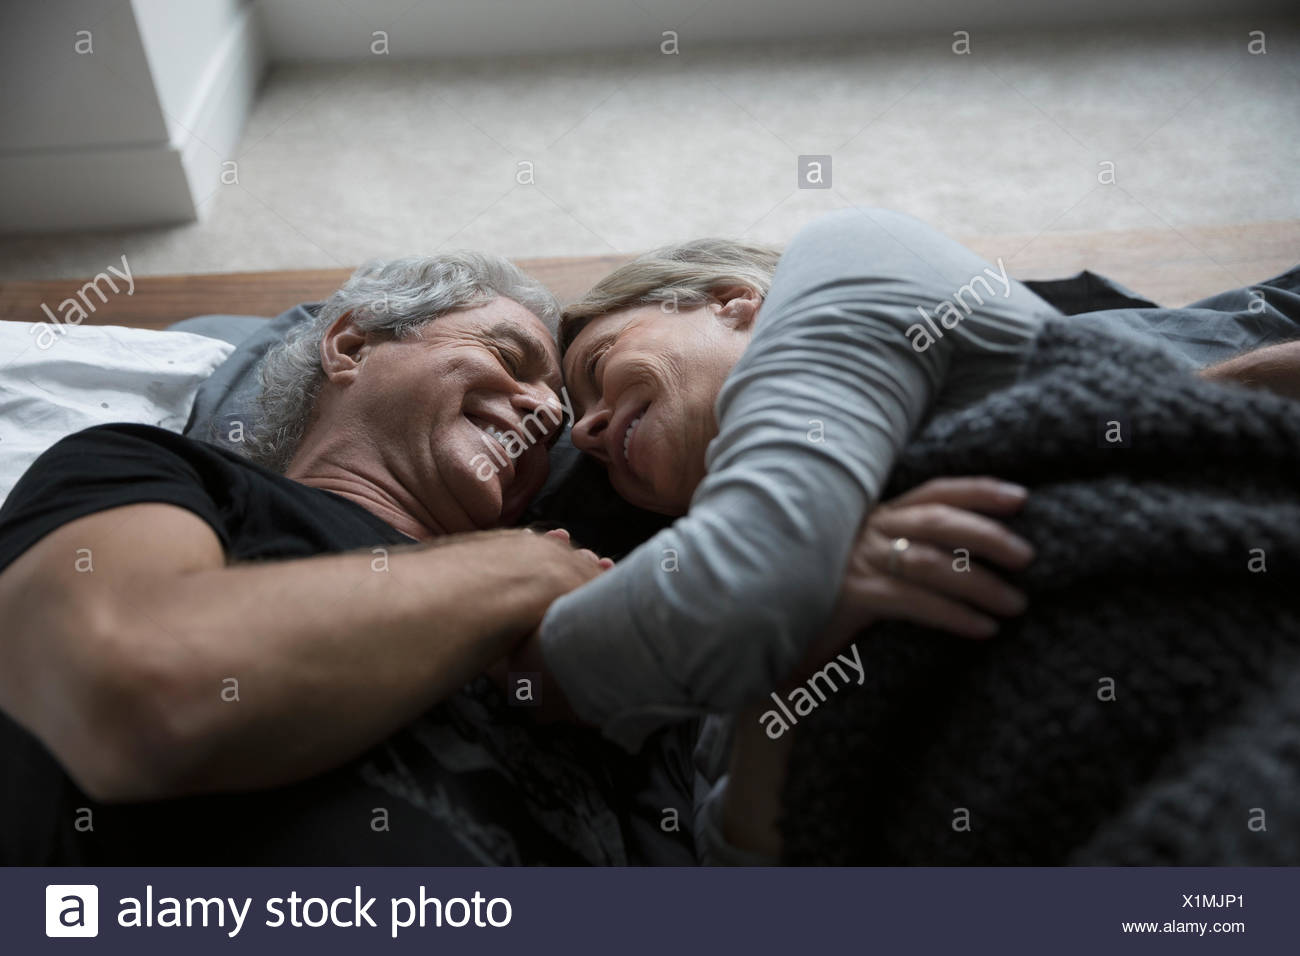 Affectionate,romantic senior couple cuddling in bed - Stock Image